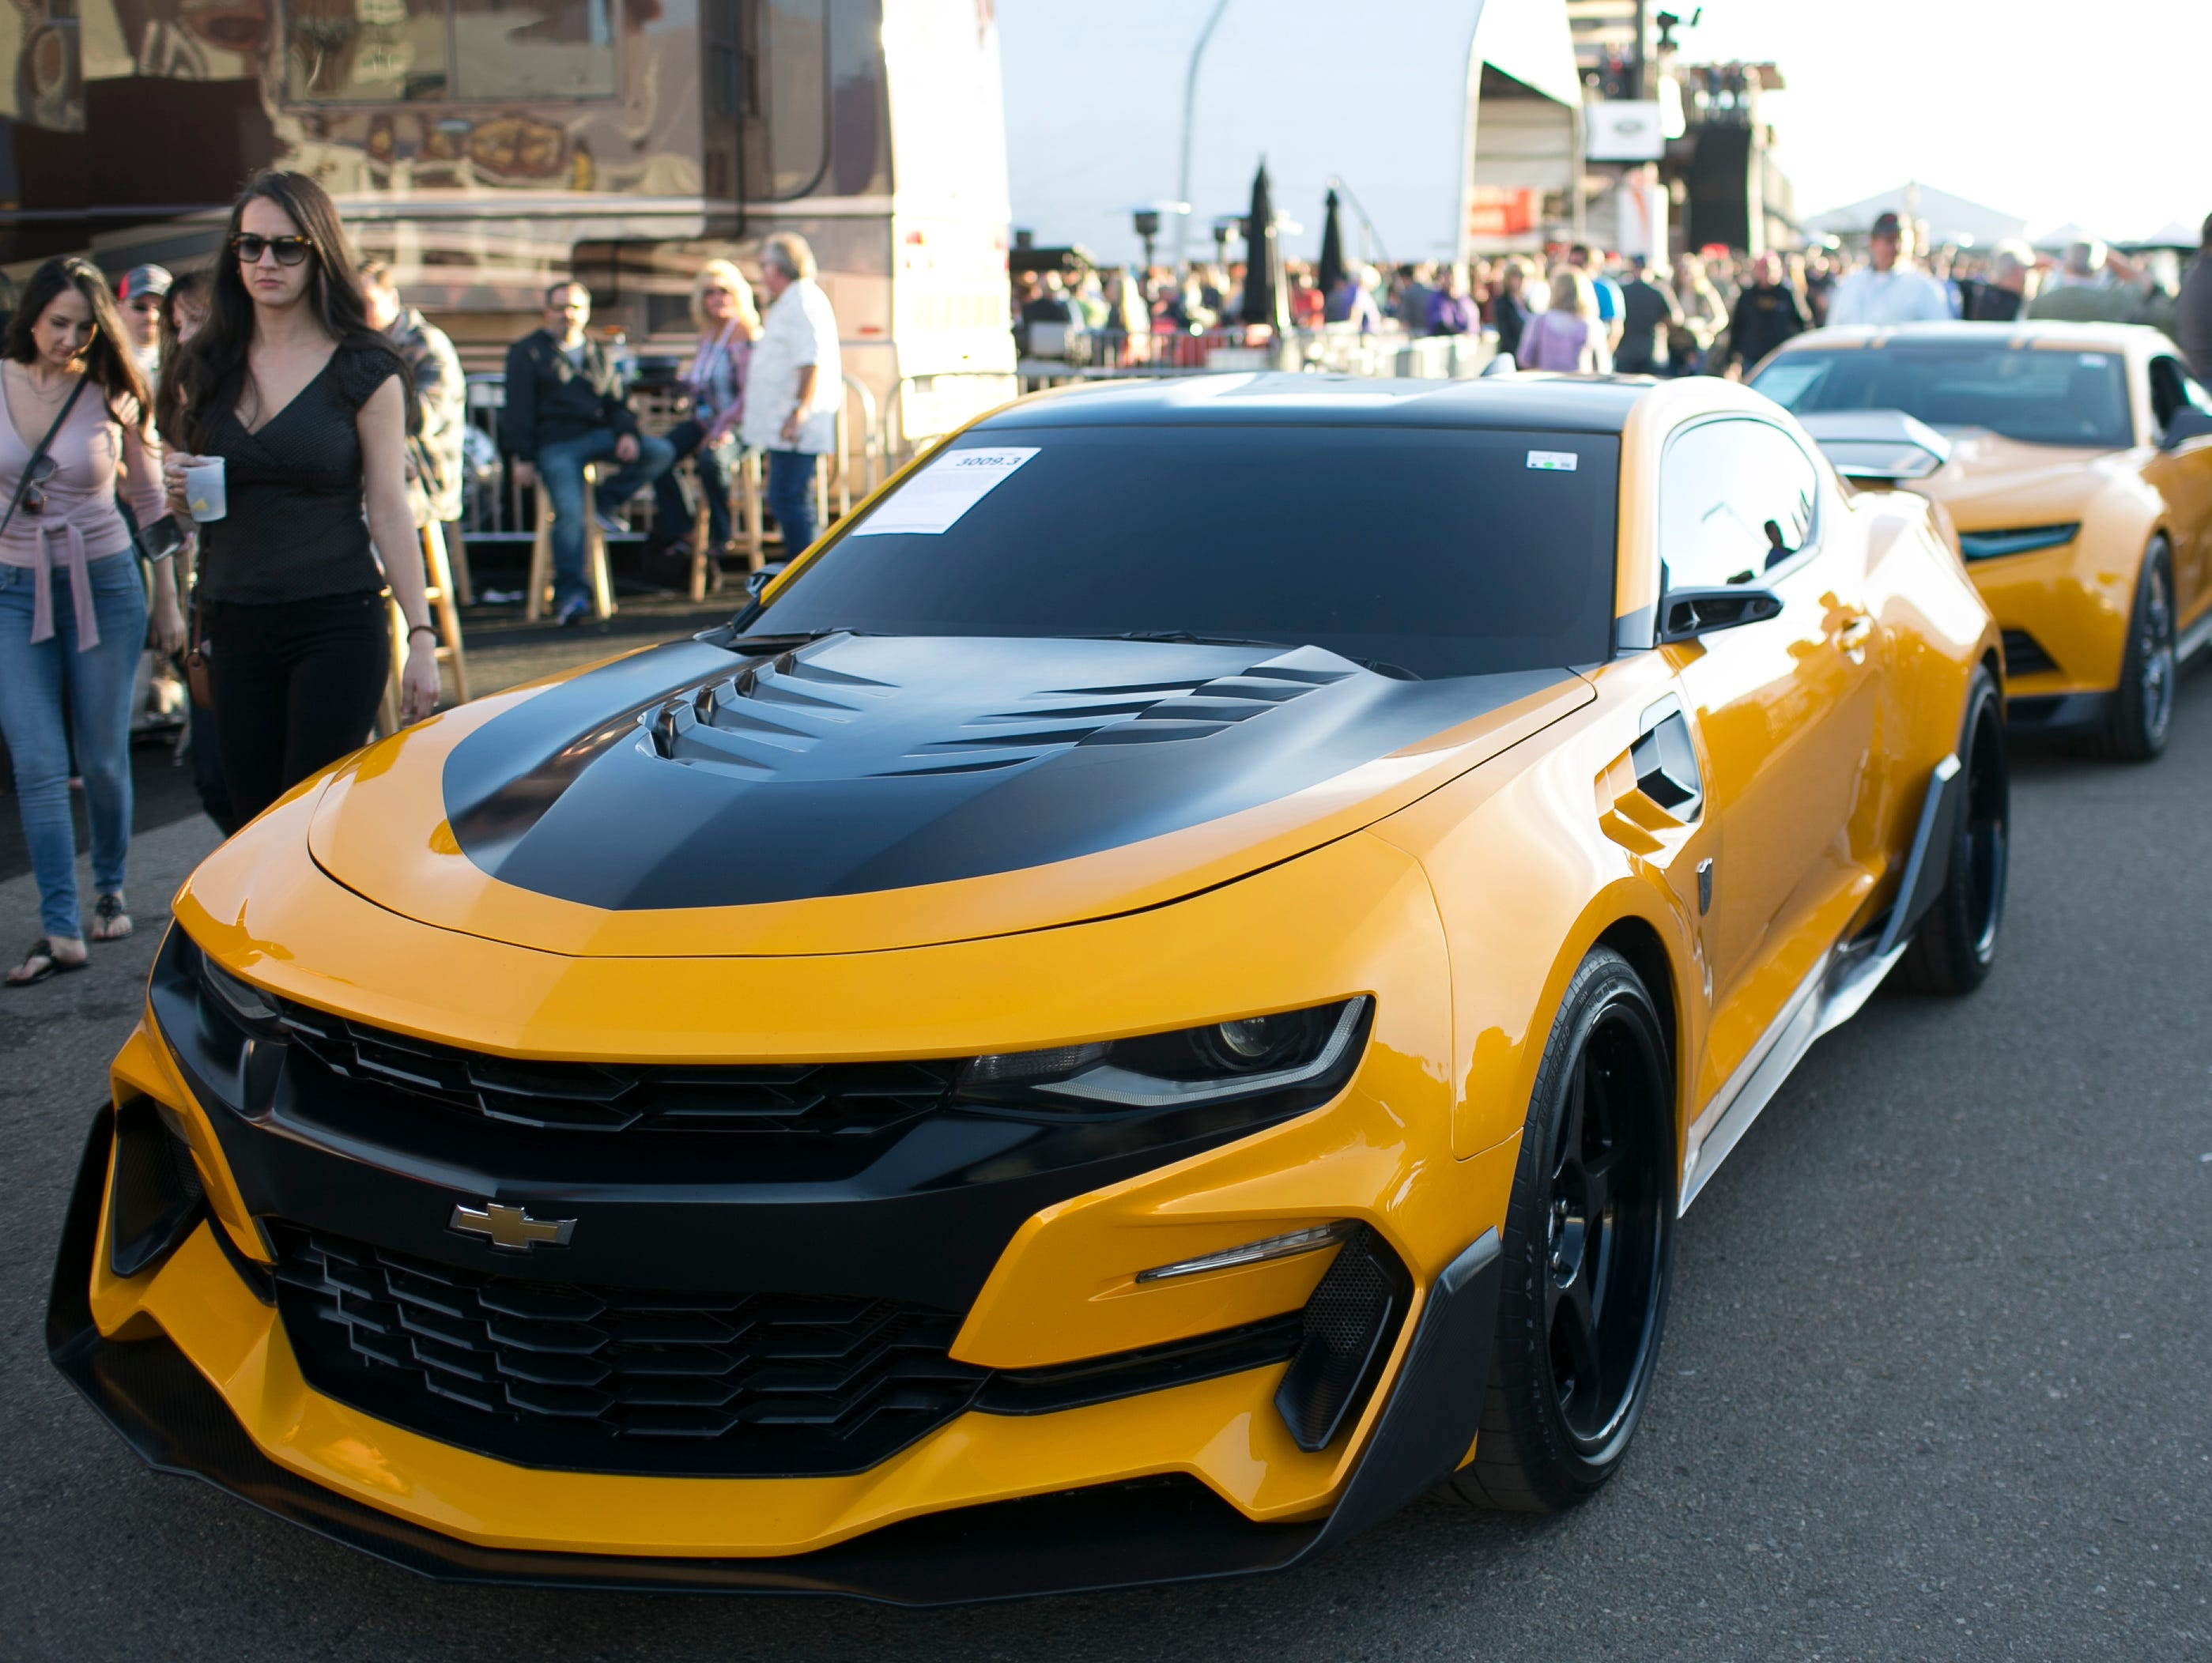 Two of four original Bumblebee Camaros from the Transformers film franchise sit outside the auction block at Barrett-Jackson collector-car auction at WestWorld on Jan. 19, 2019, in Scottsdale. The four sold for $500,000 total with the money going to benefit Operation Homefront, a non-profit that supports military families.